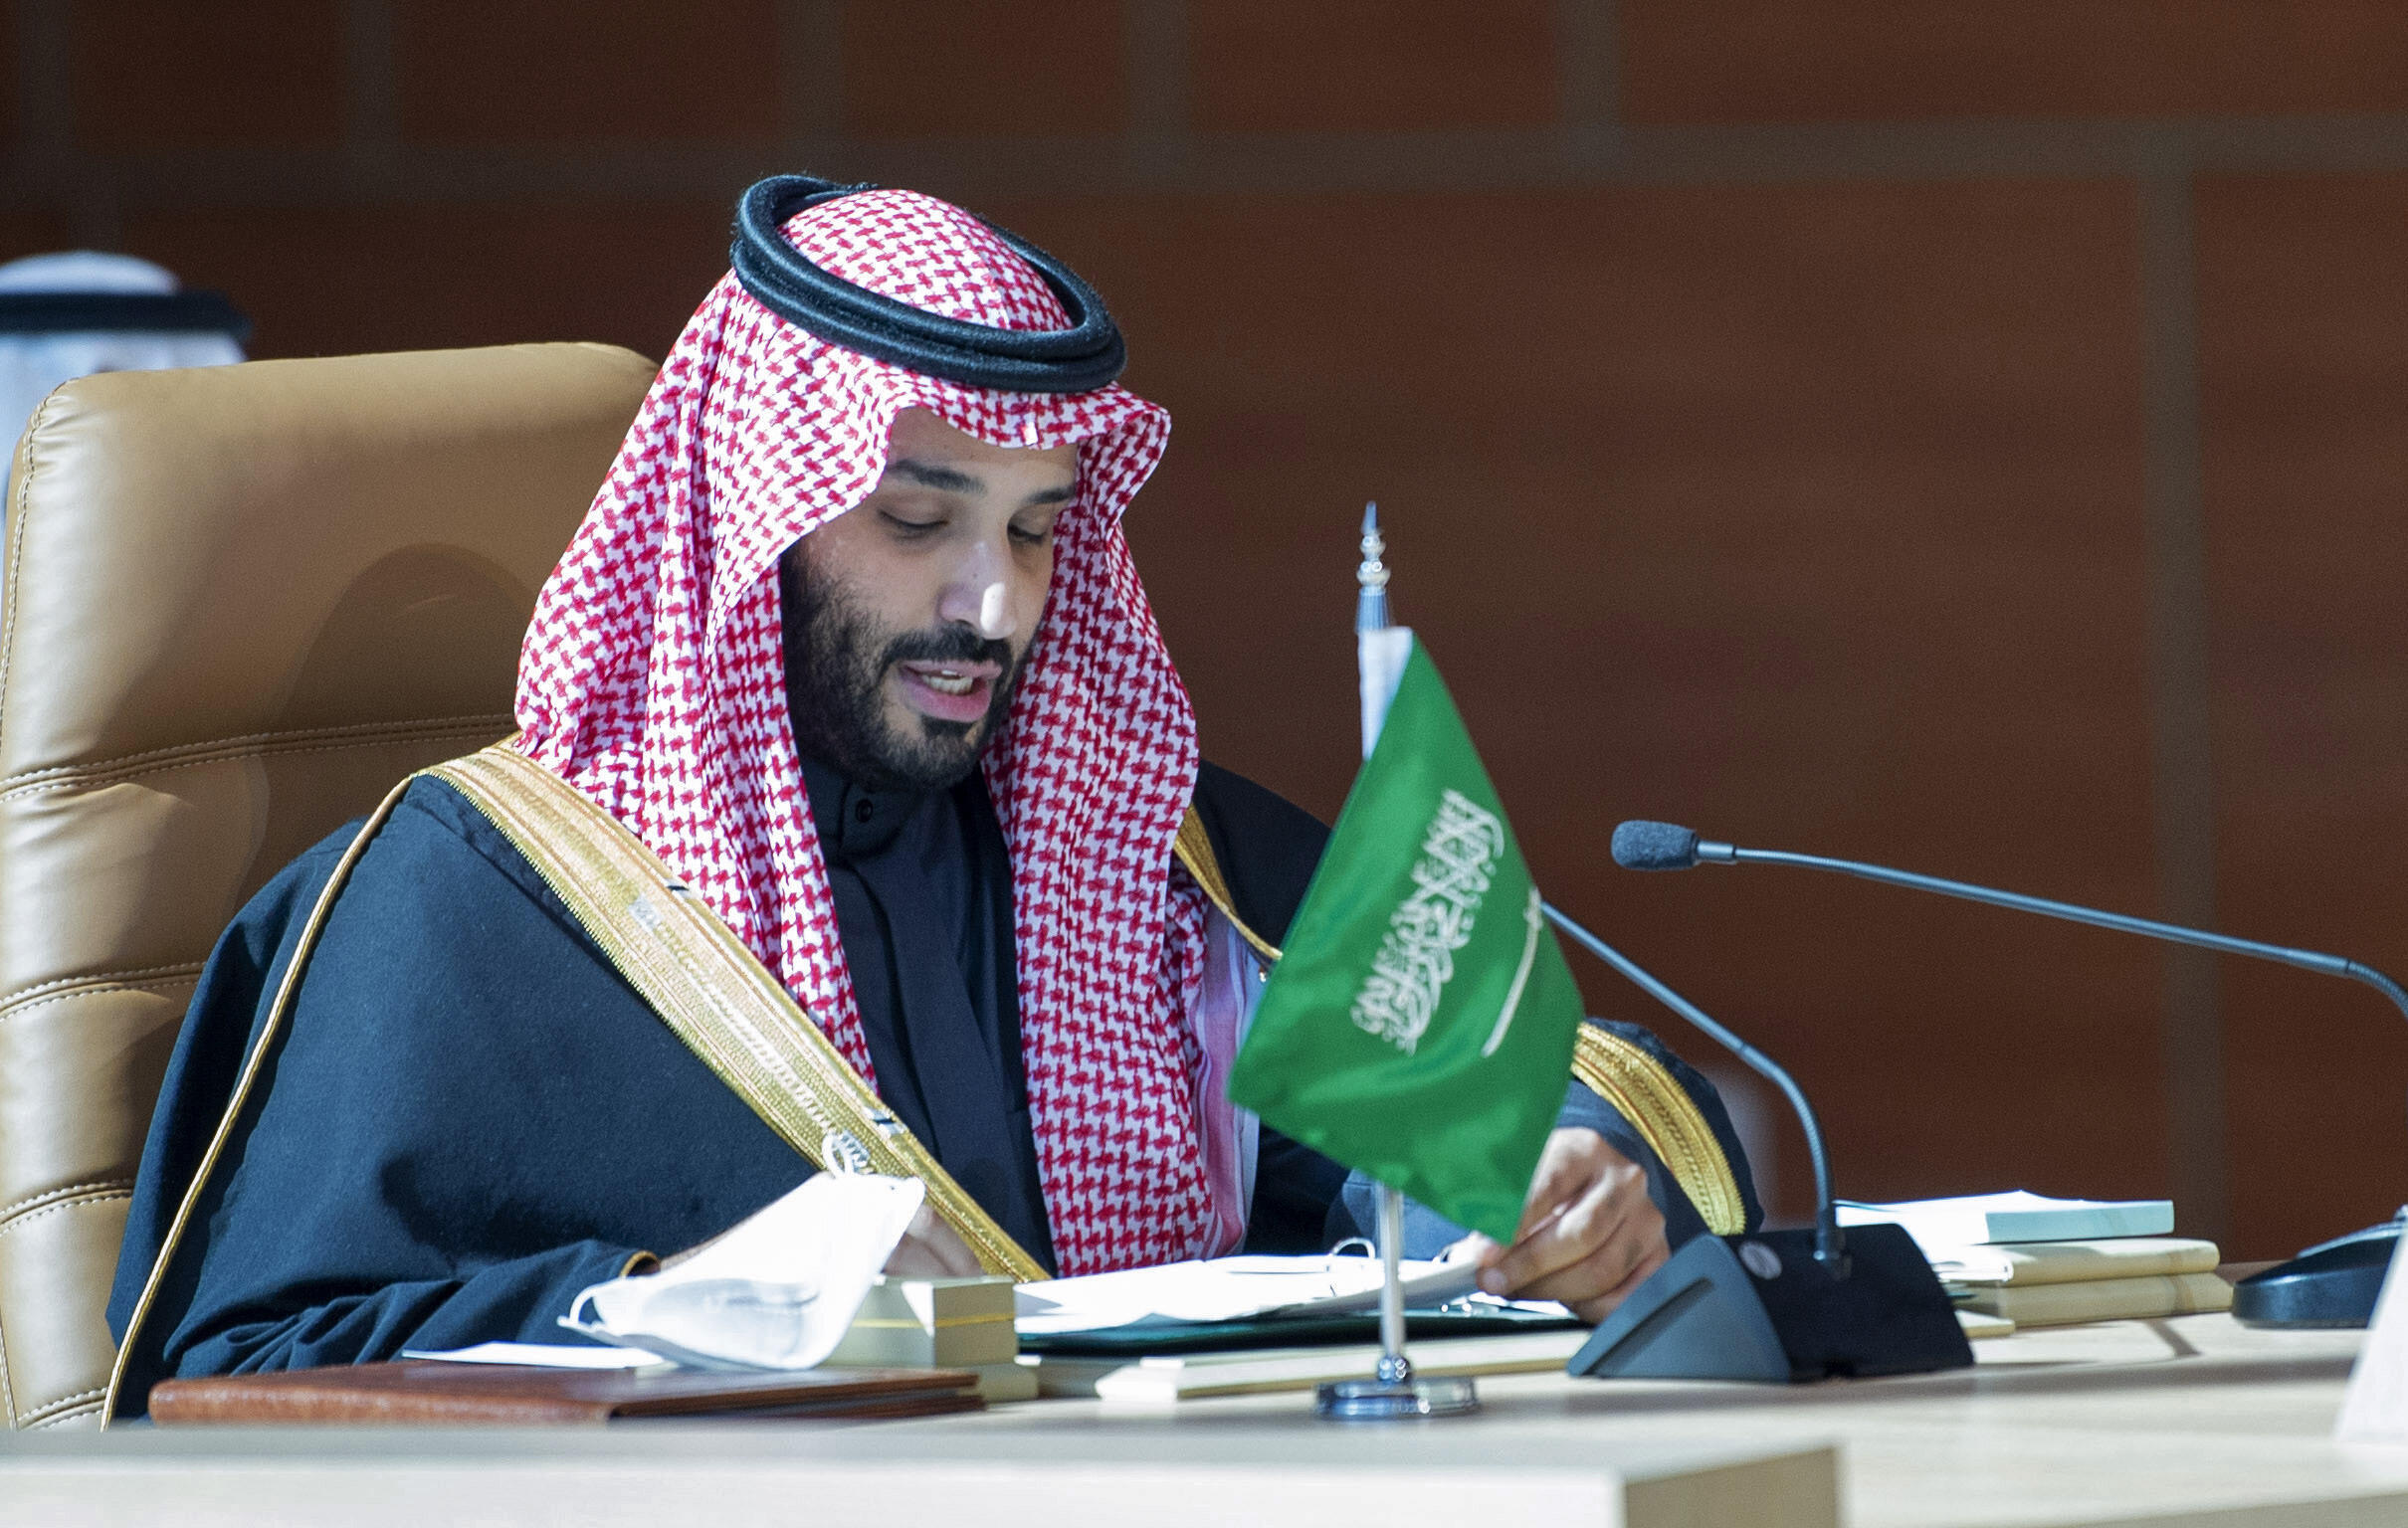 Led by Crown Prince Mohammed bin Salman, Saudi Arabia has carried out a sweeping crackdown on dissent - and largely got a free pass under former US president Donald Trump